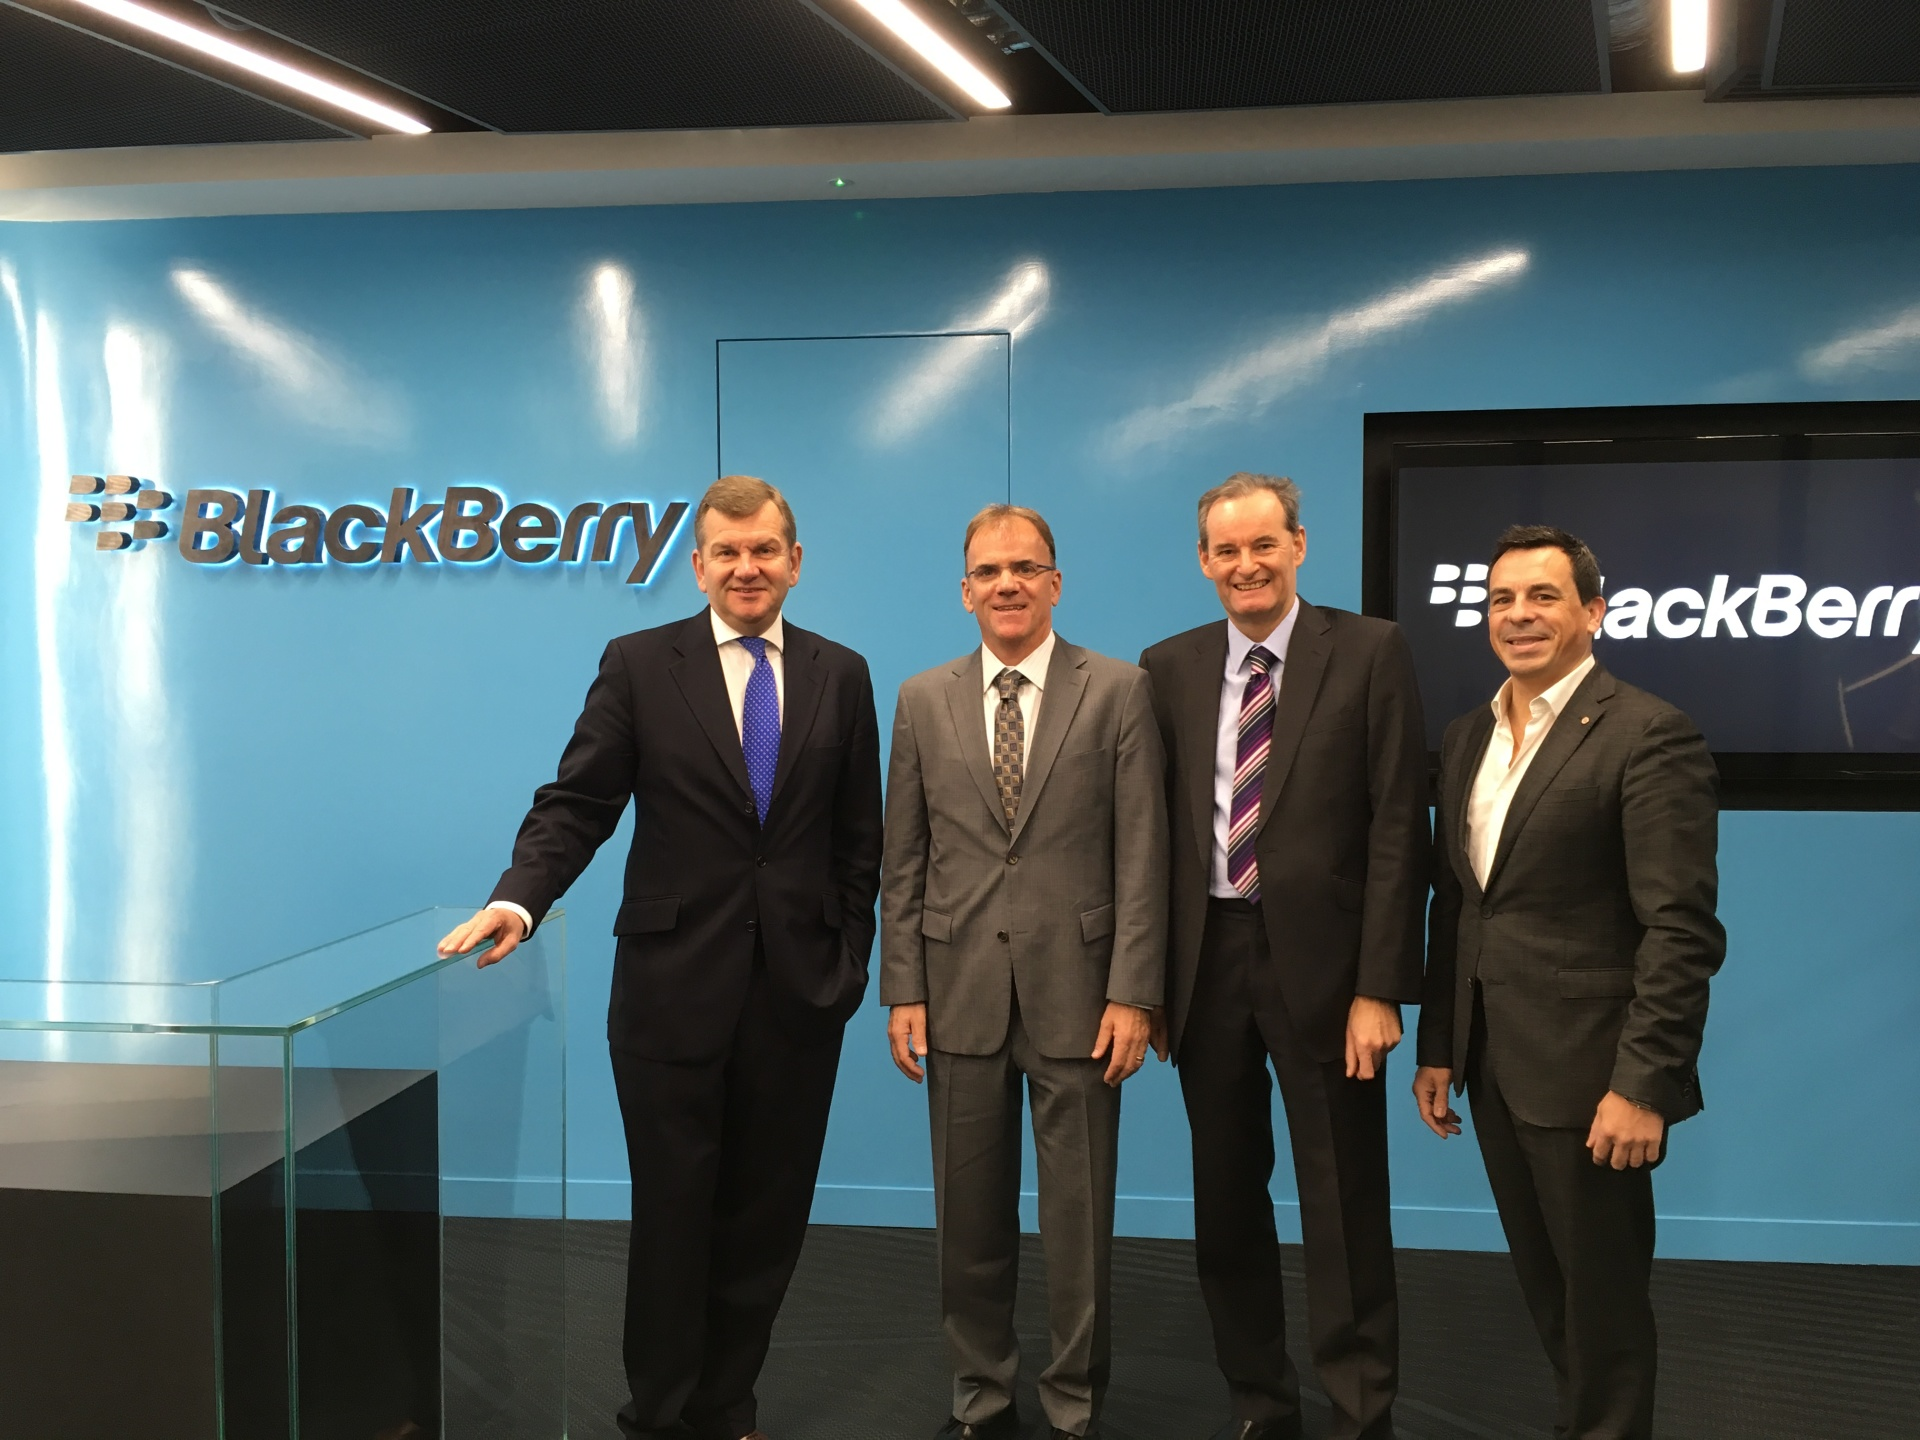 BlackBerry welcomed by Royal Borough